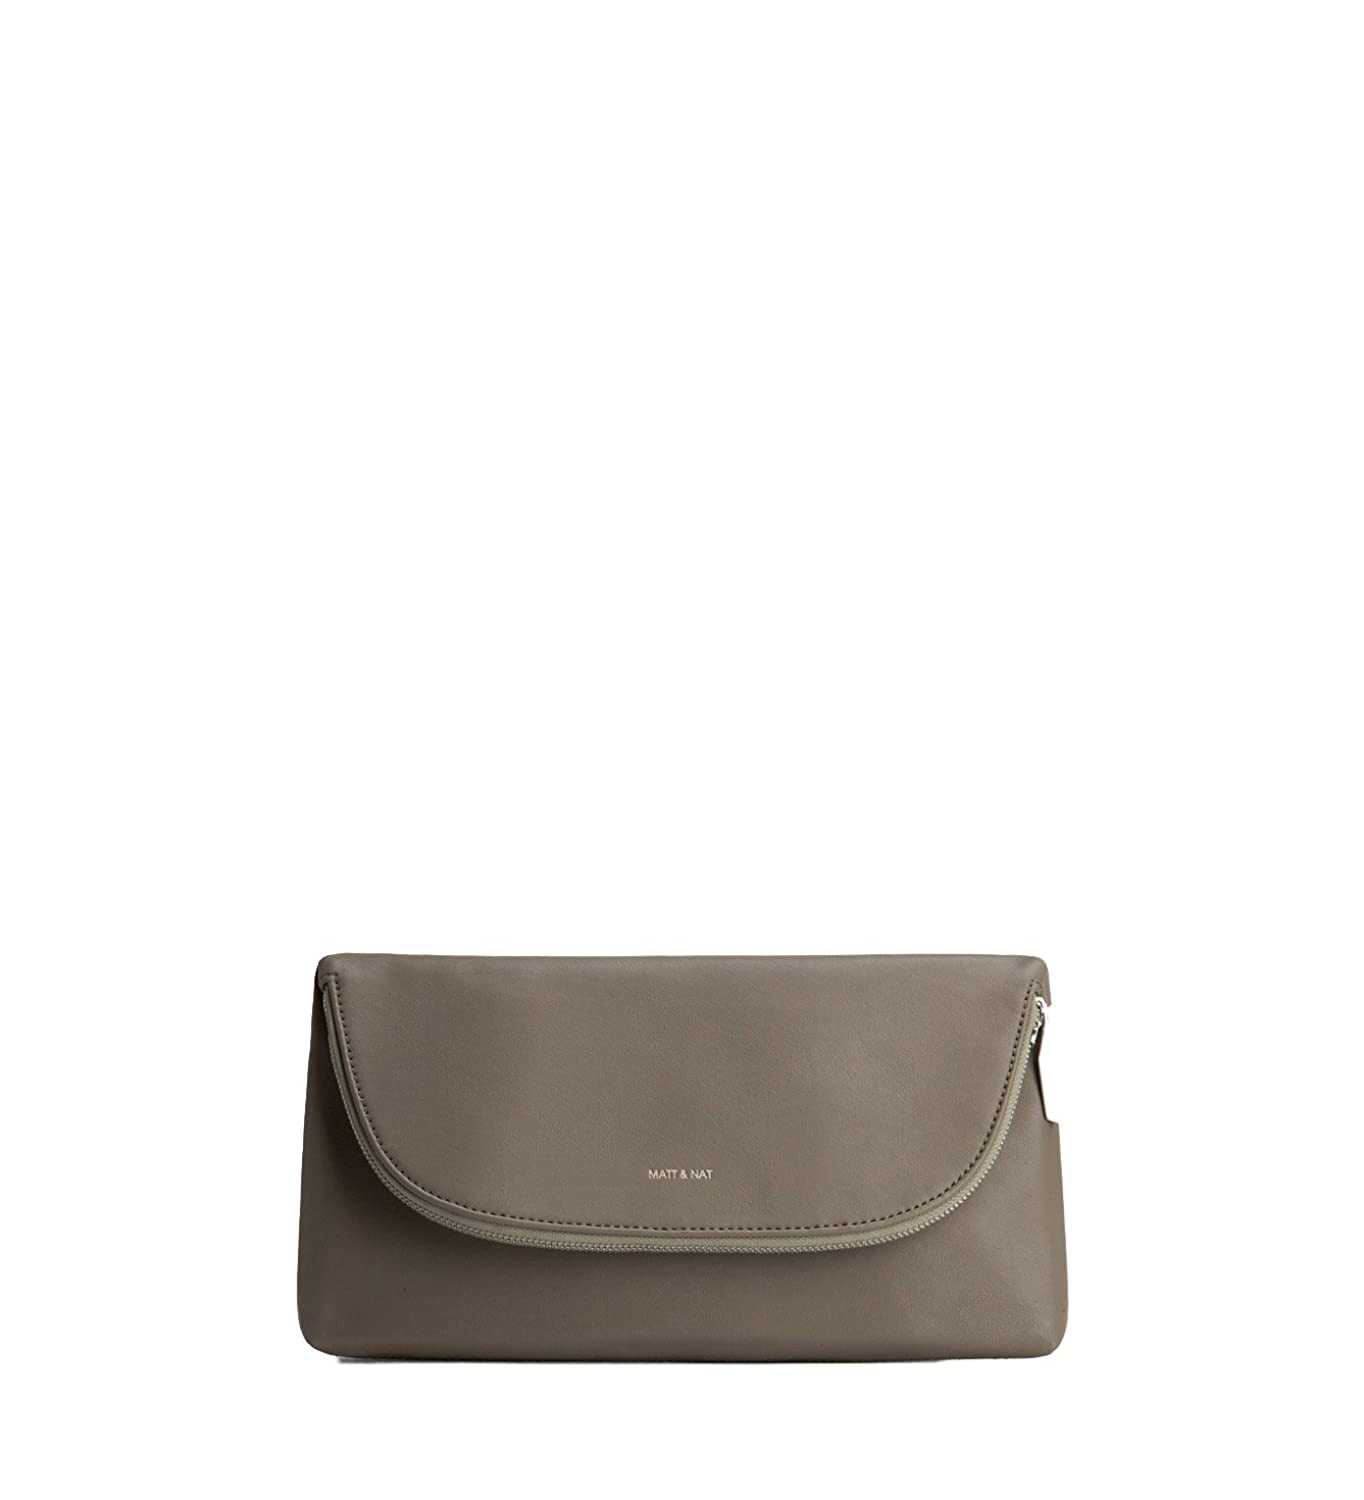 Matt & Nat Robby Loom Clutch, 100% Vegan, Sage Green